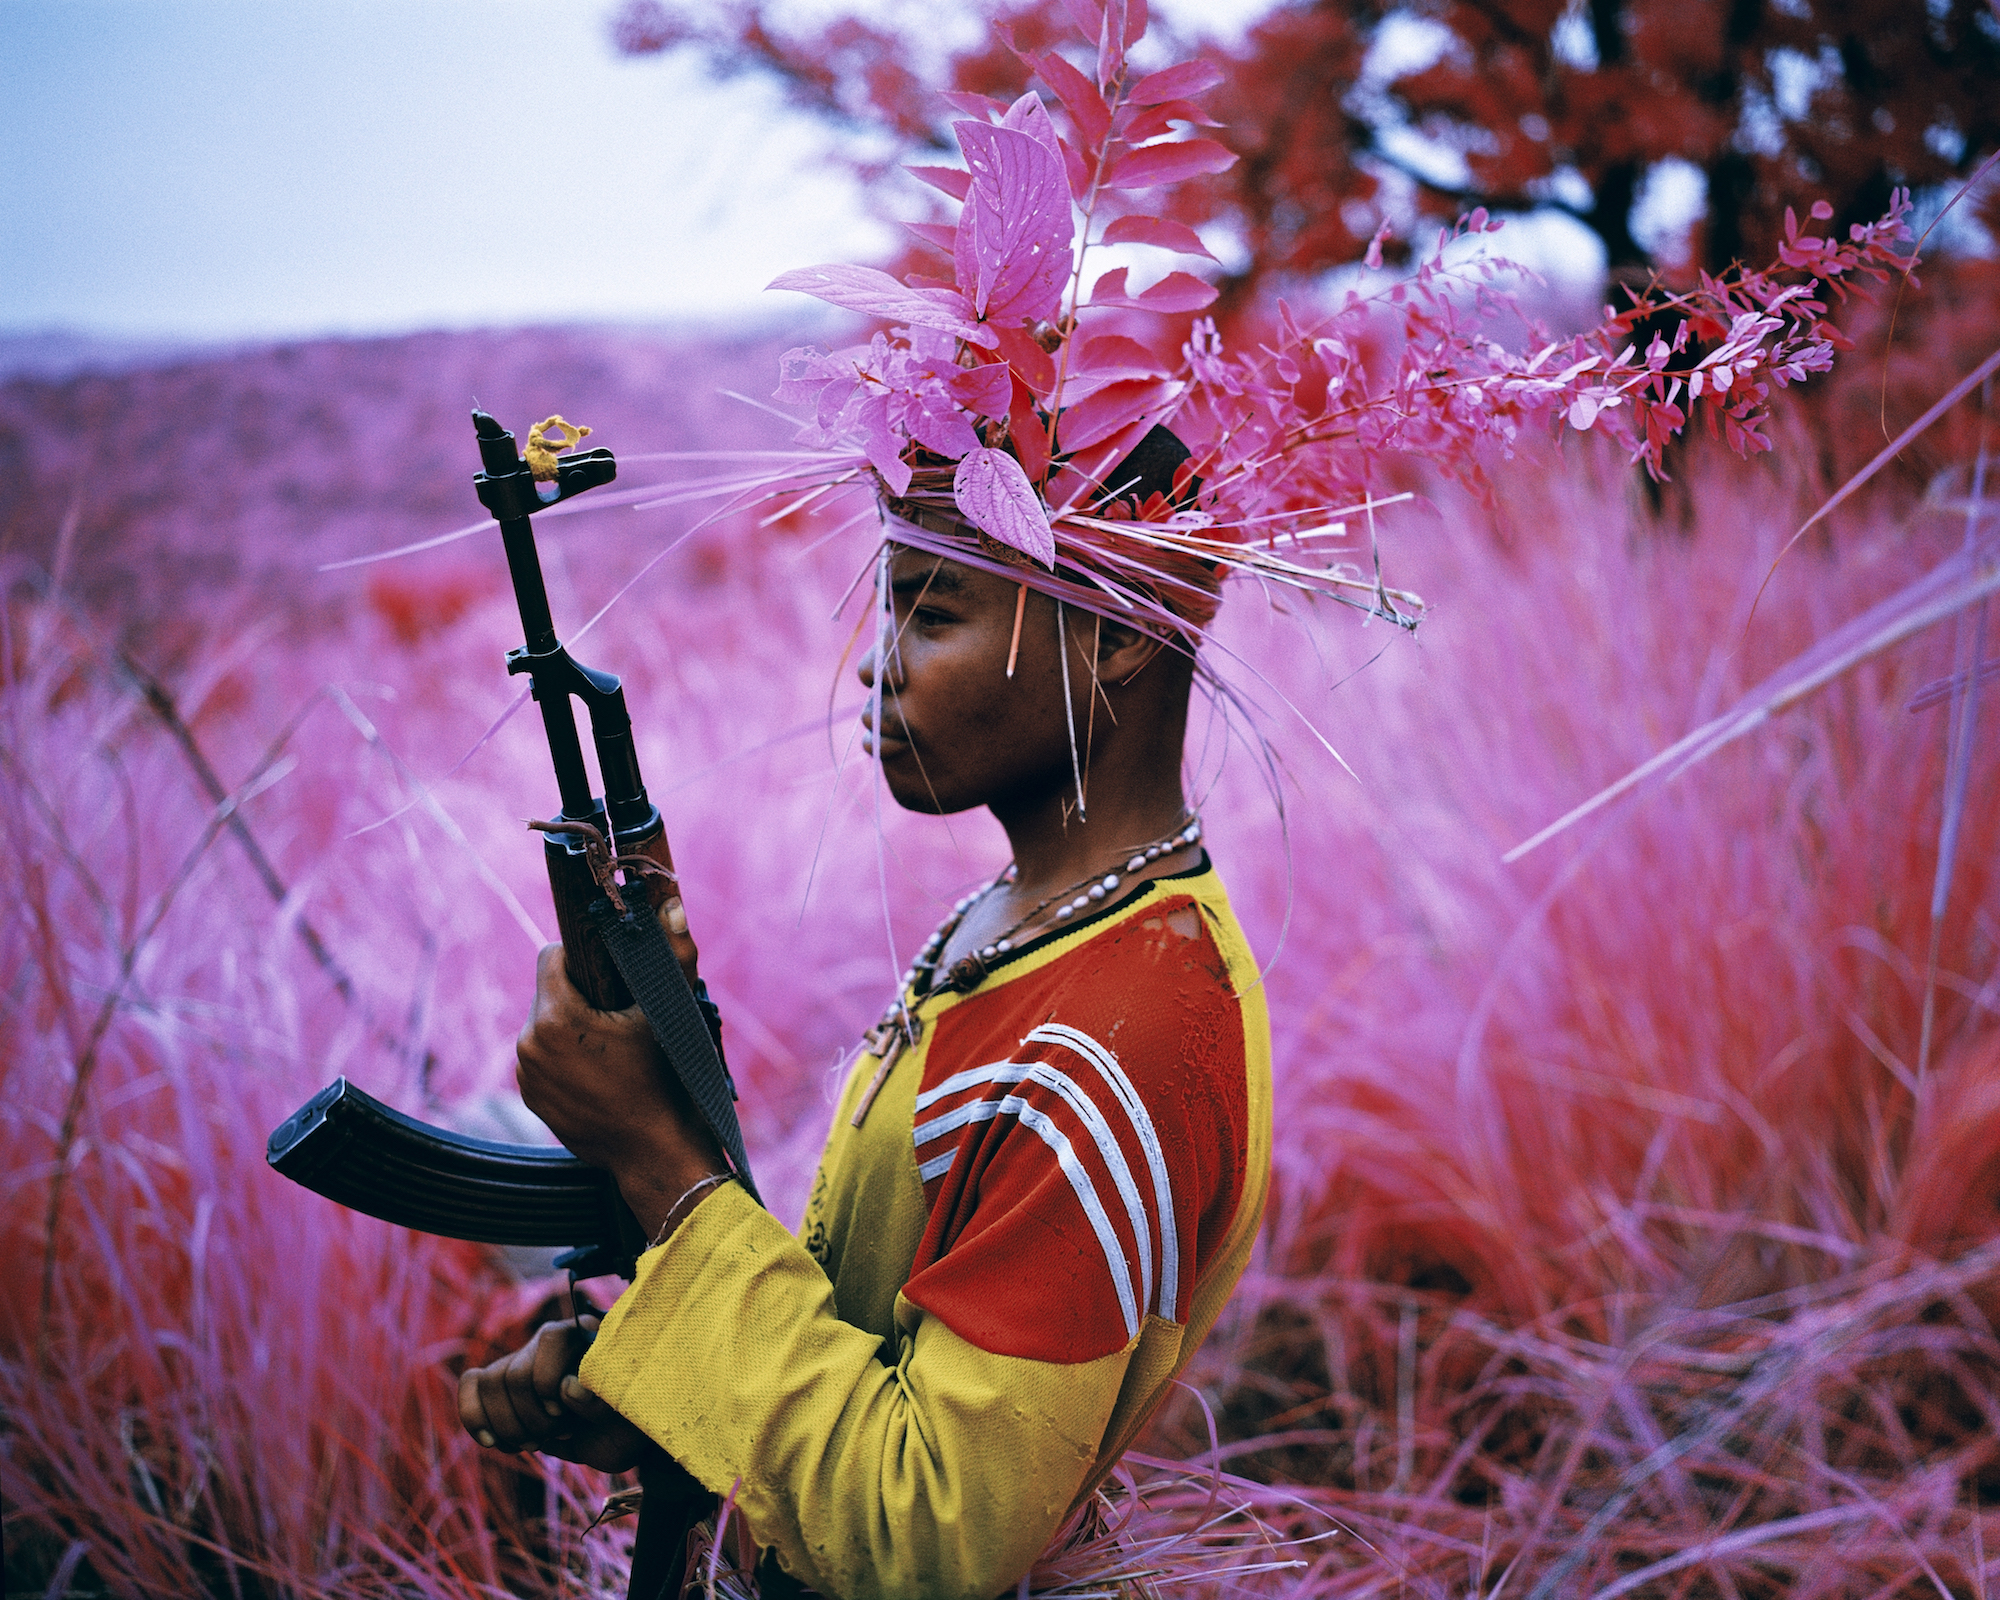 Richard Mosse, Safe From Harm, 2012